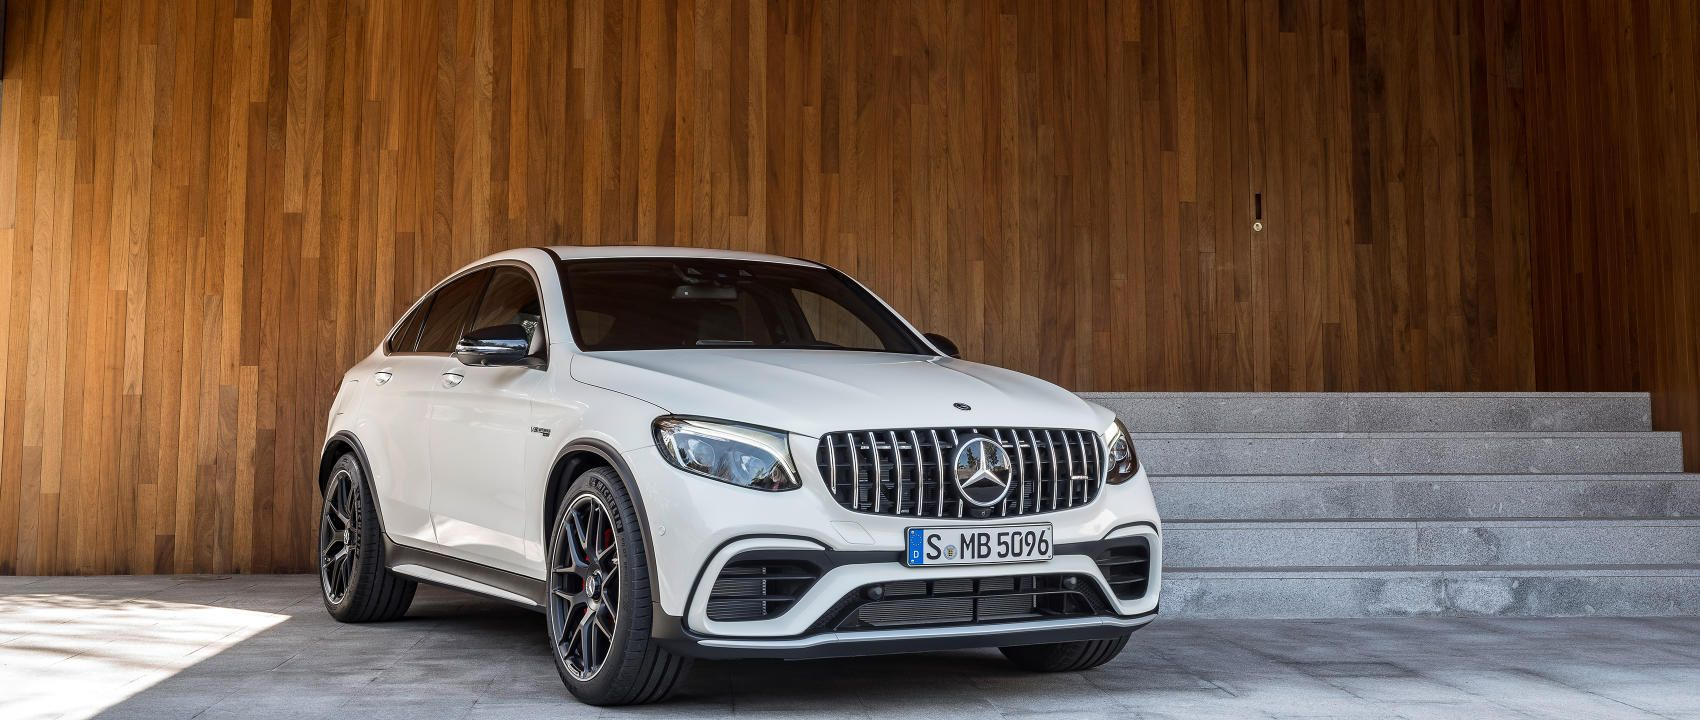 13 Mercedes Benz Vehicles Mercedes Amg Glc 63 S 4matic Coupe C 253